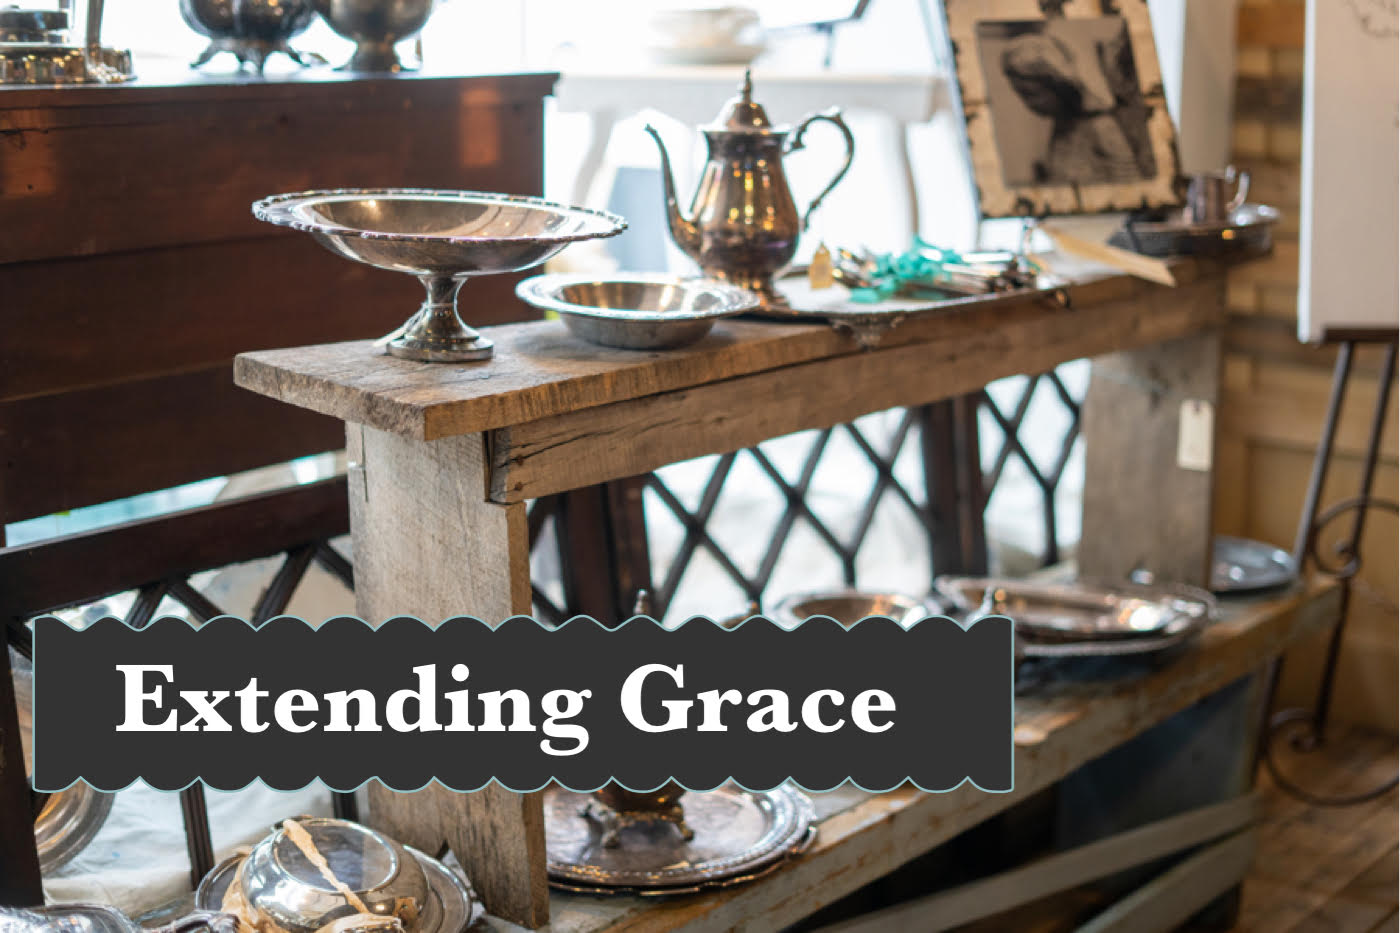 Step Inside Extending Grace